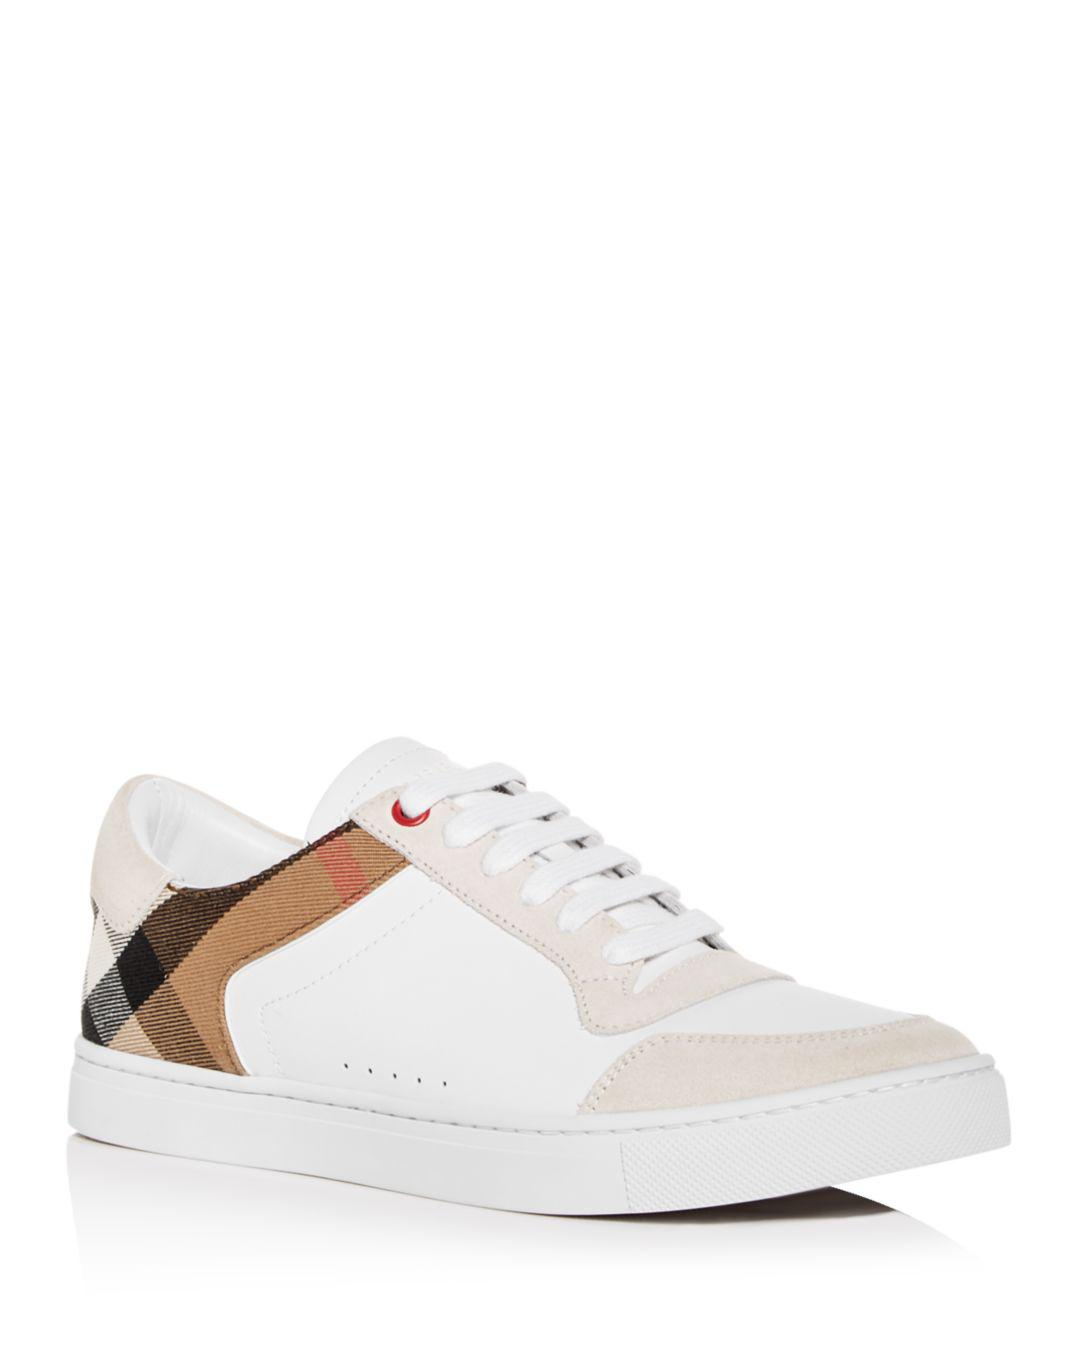 ce93a270af0 Lyst - Burberry Men s Reeth Leather Low-top Sneakers in White for Men